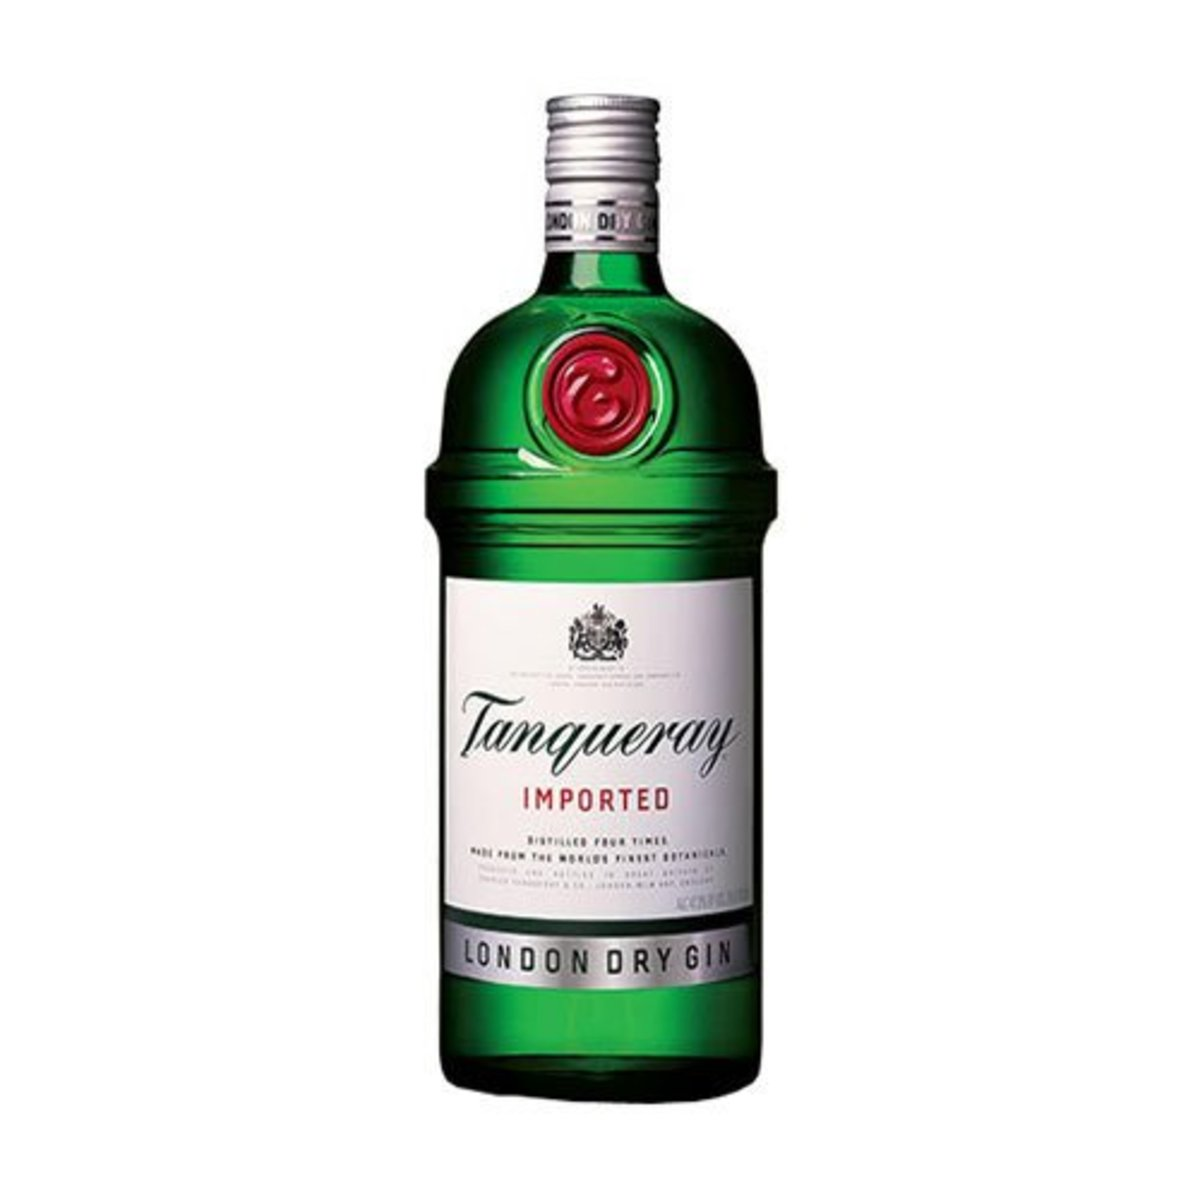 Although it is very popular in the USA, it is not as well known in the UK. Allegedly, this is thanks in part to the prohibition period when the gin was exported to British colonies then smuggled over to America in large quantities.